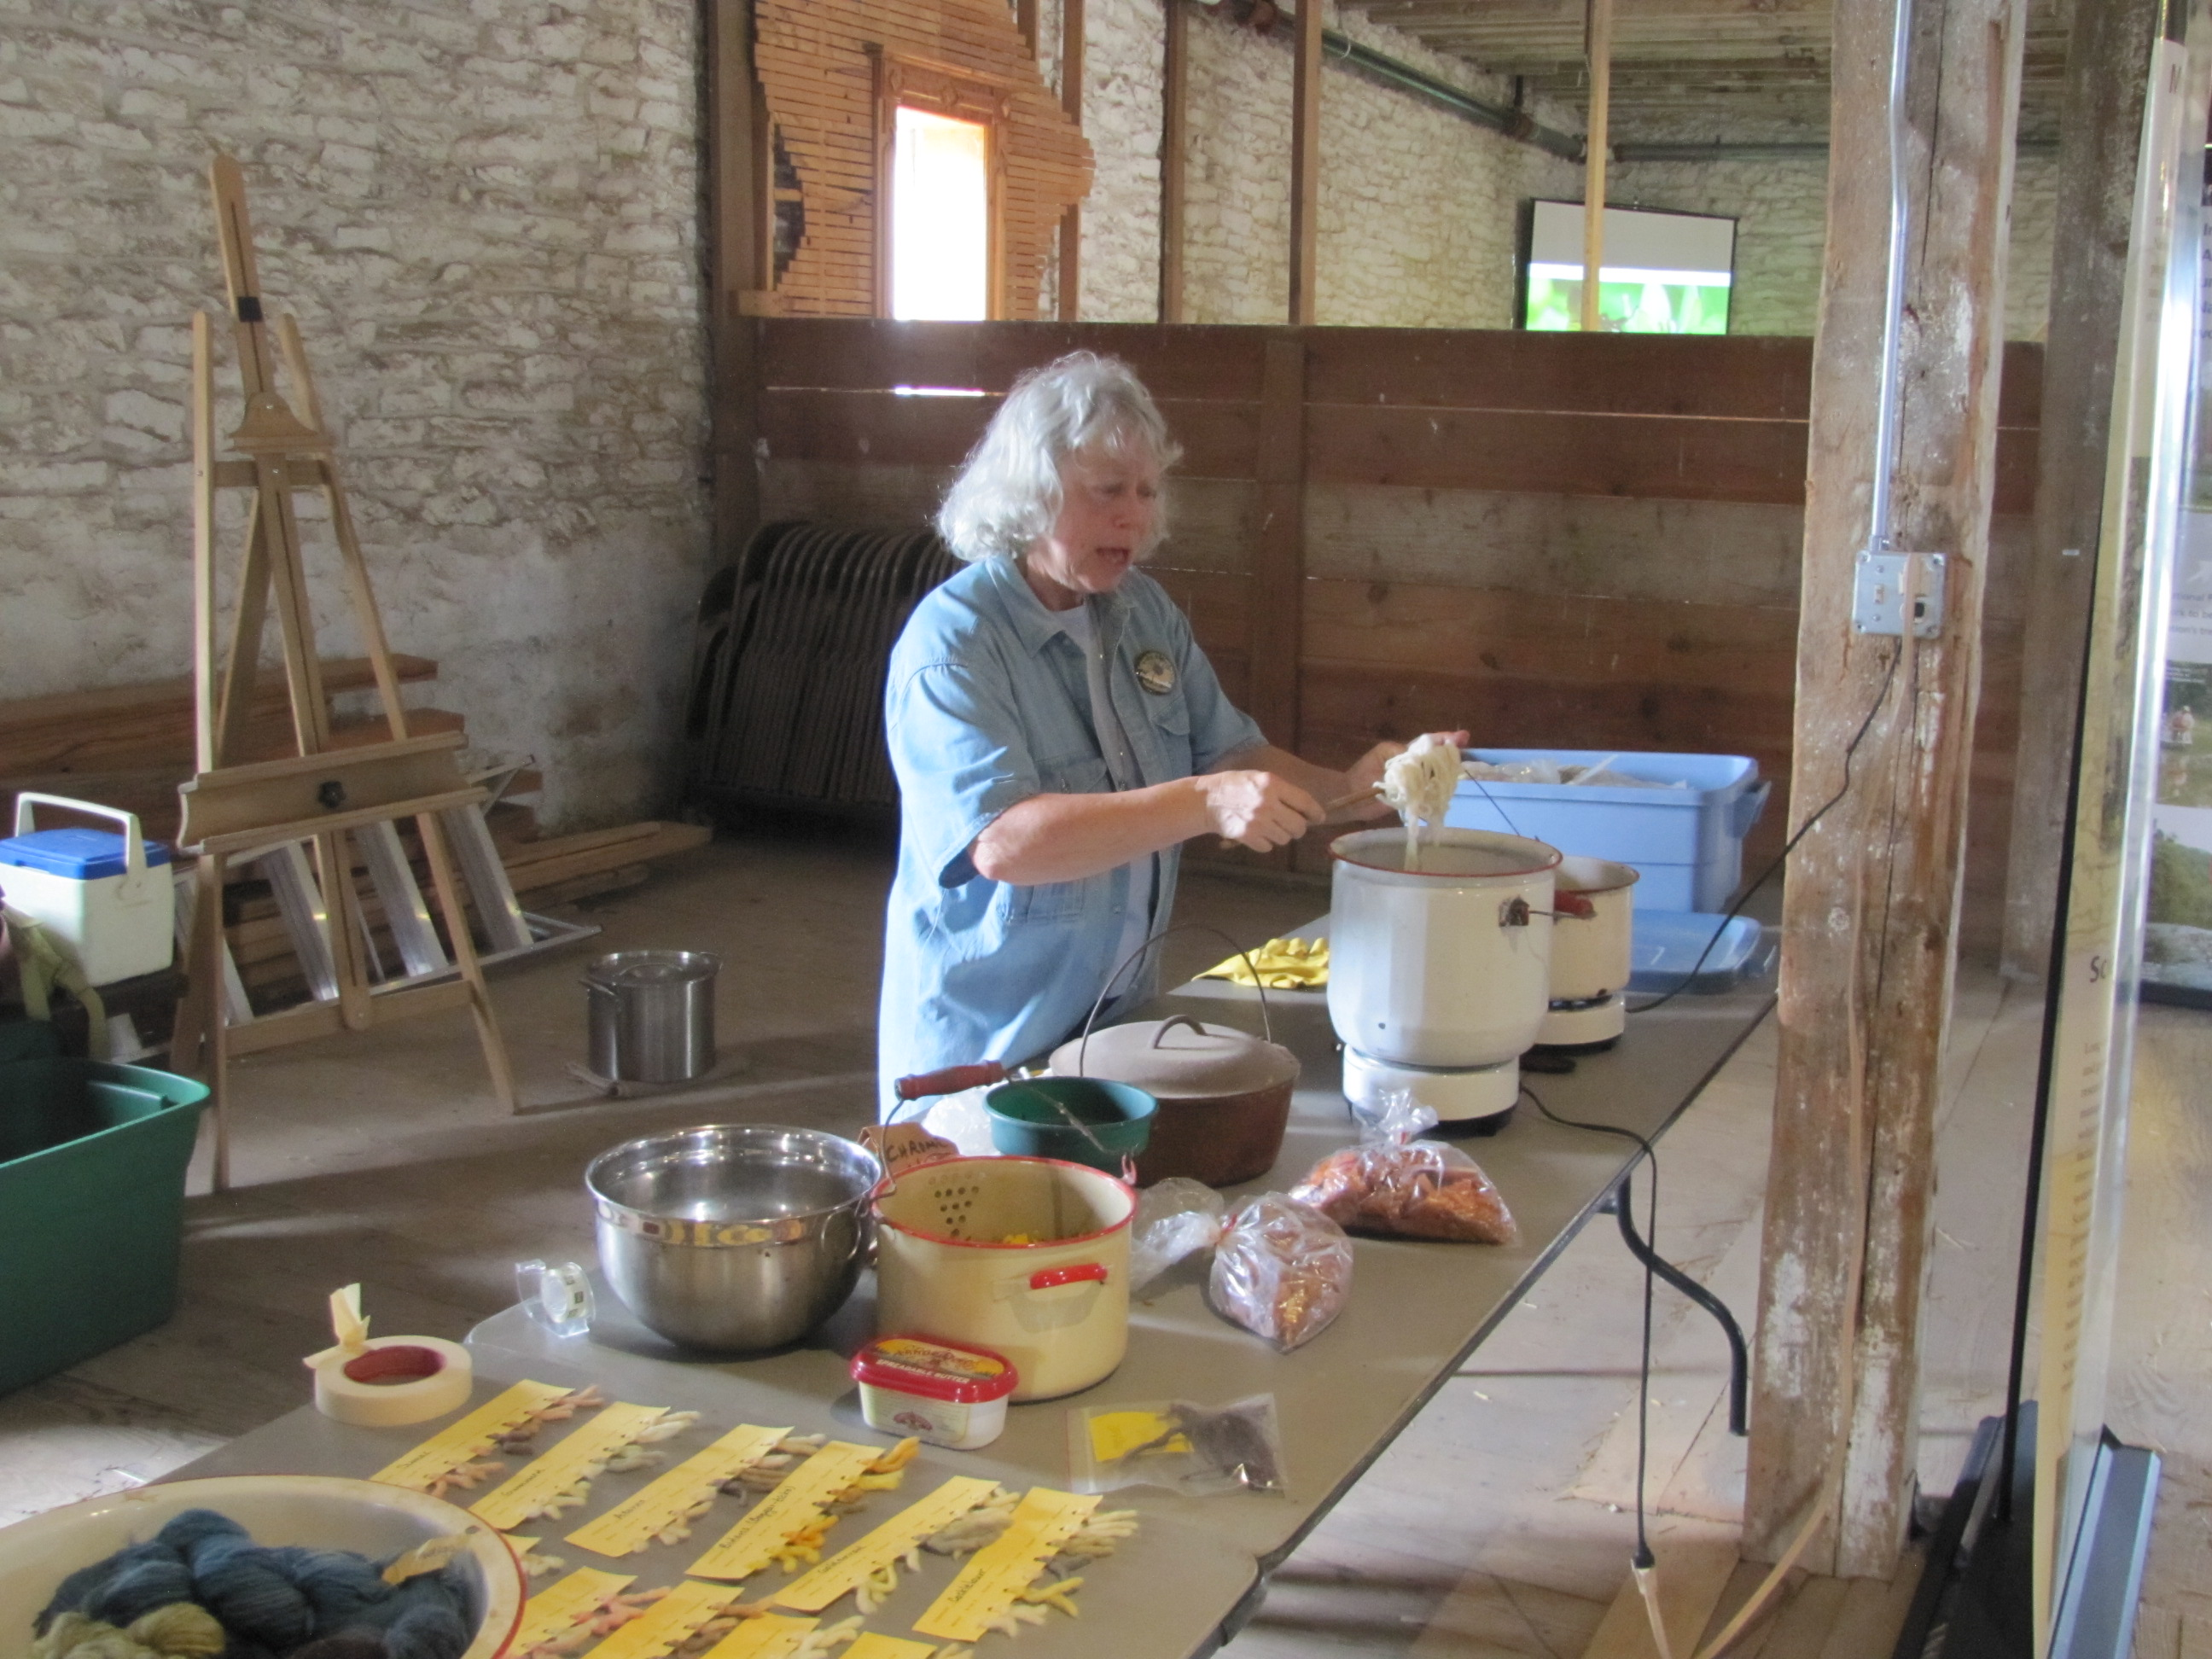 Volunteer presenting program on dyeing yarn using different prairie plants